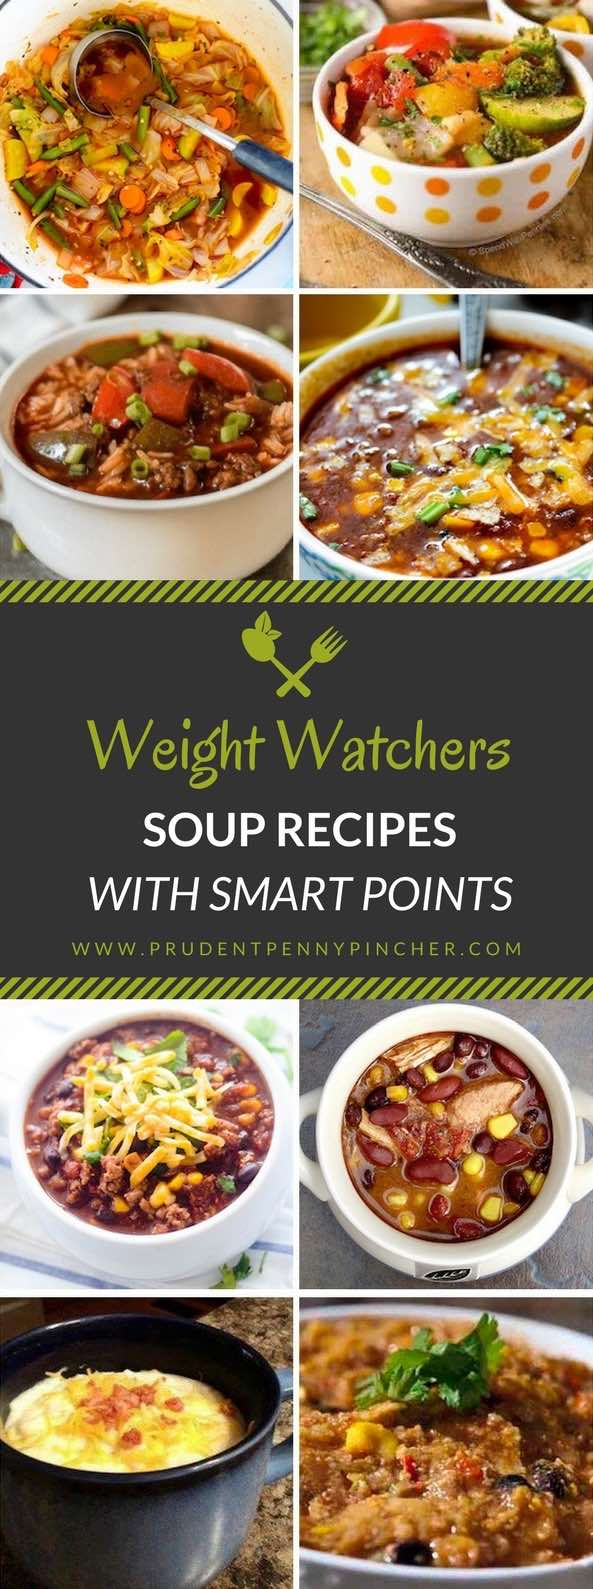 Weight Watcher Soup Recipes With Smart Points